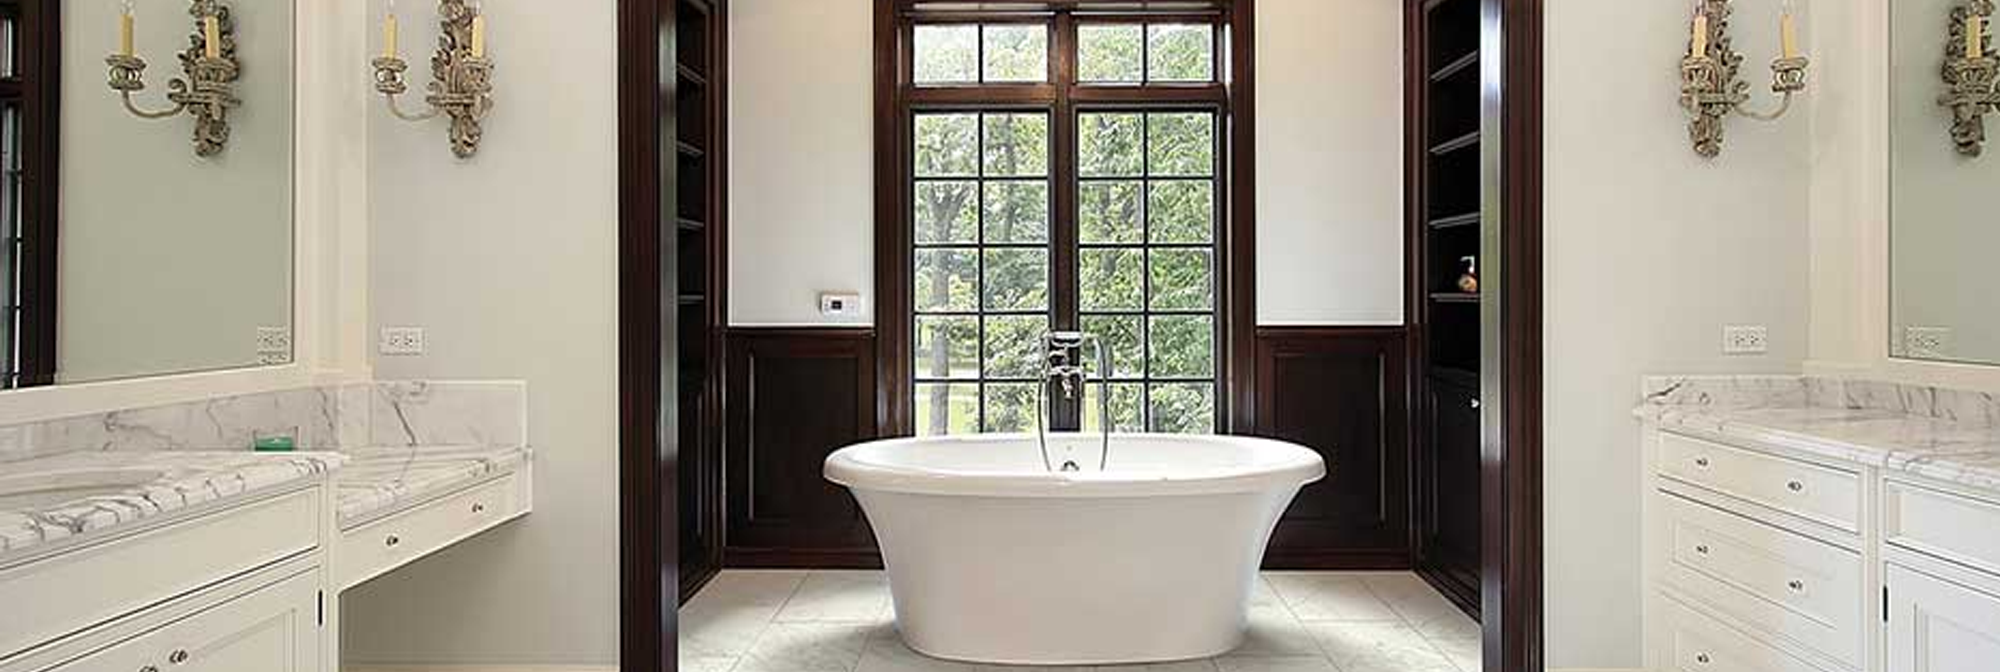 Bathroom and Kitchen Remodeling Products